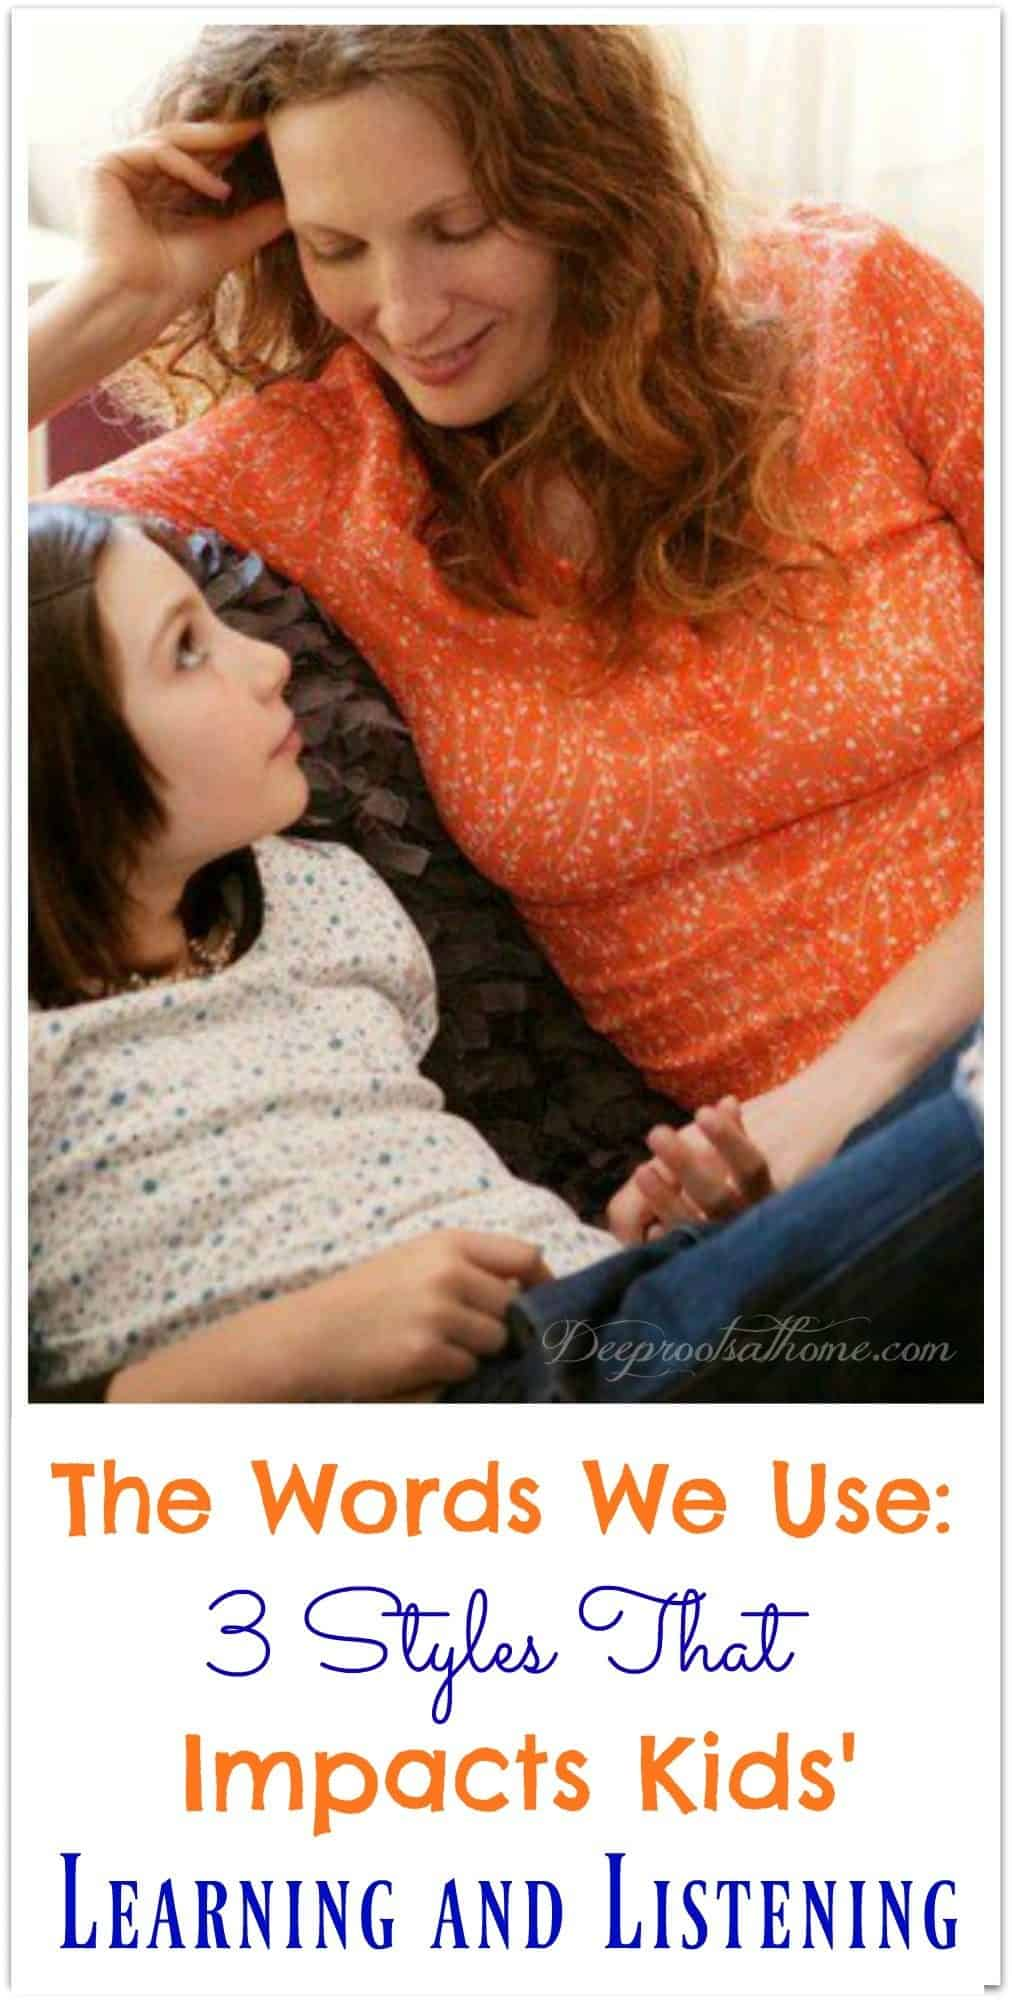 The Words We Use: 3 Styles that Impacts Kids' Learning and Listening. A calm conversation between mother and daughter